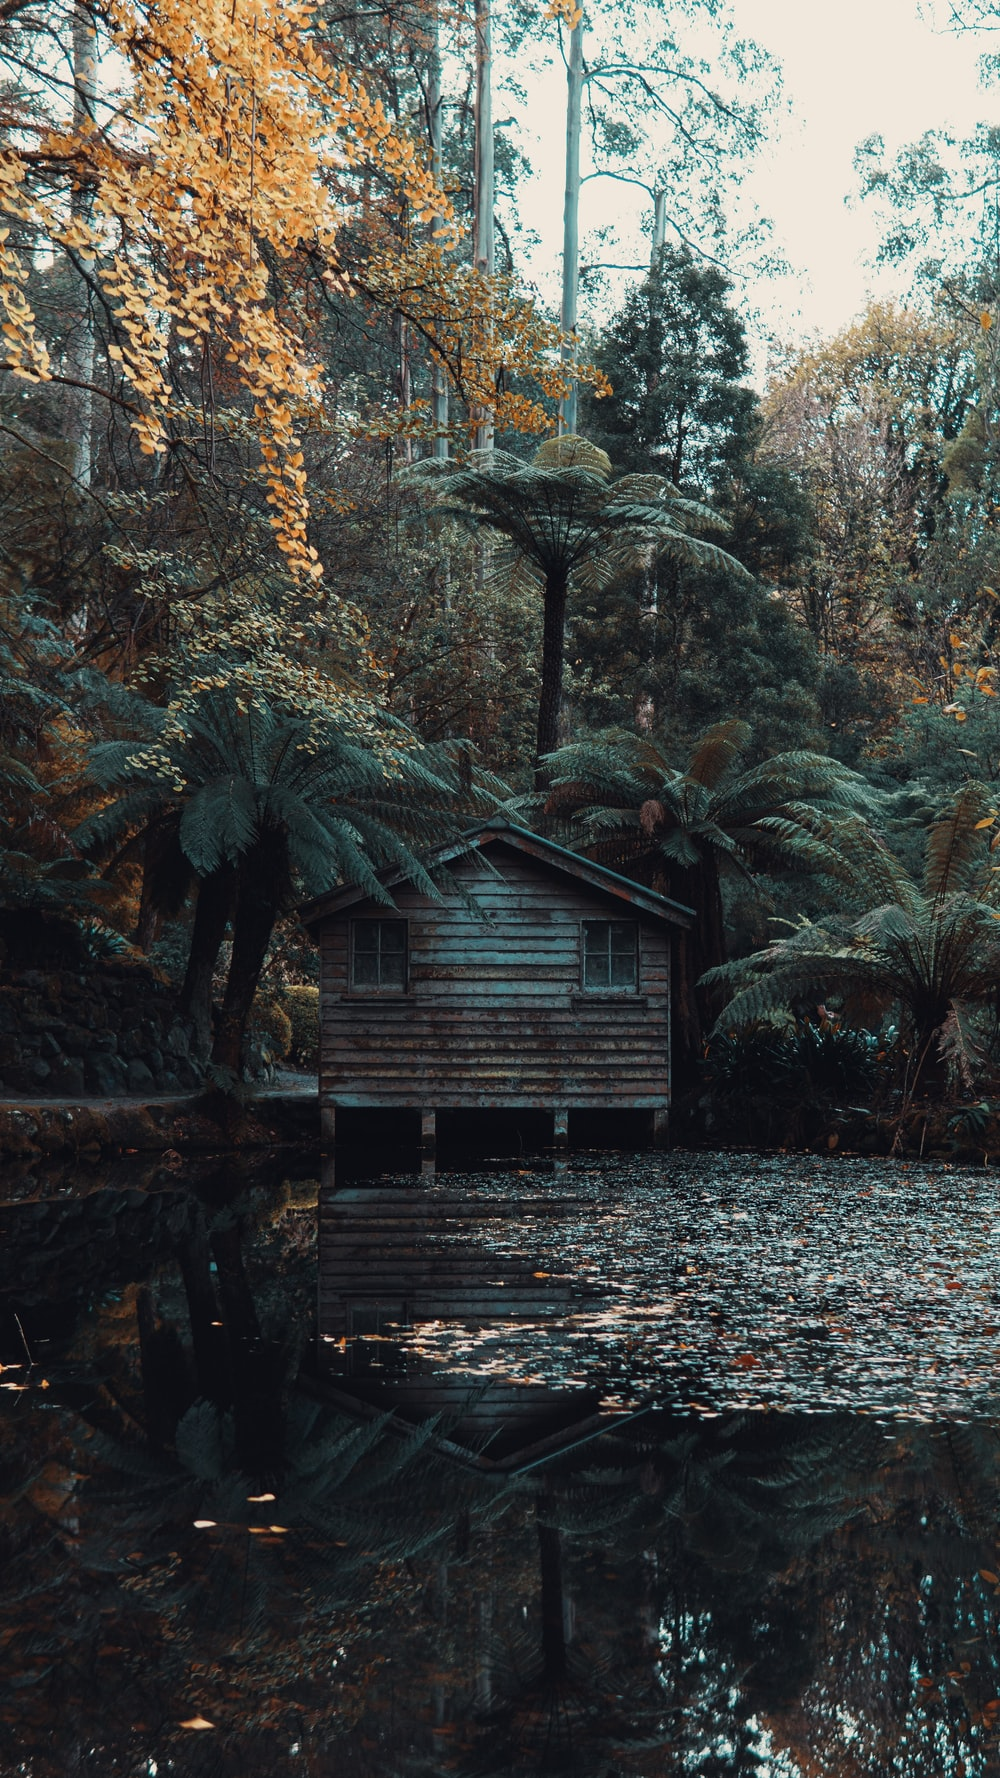 brown wooden house on lake